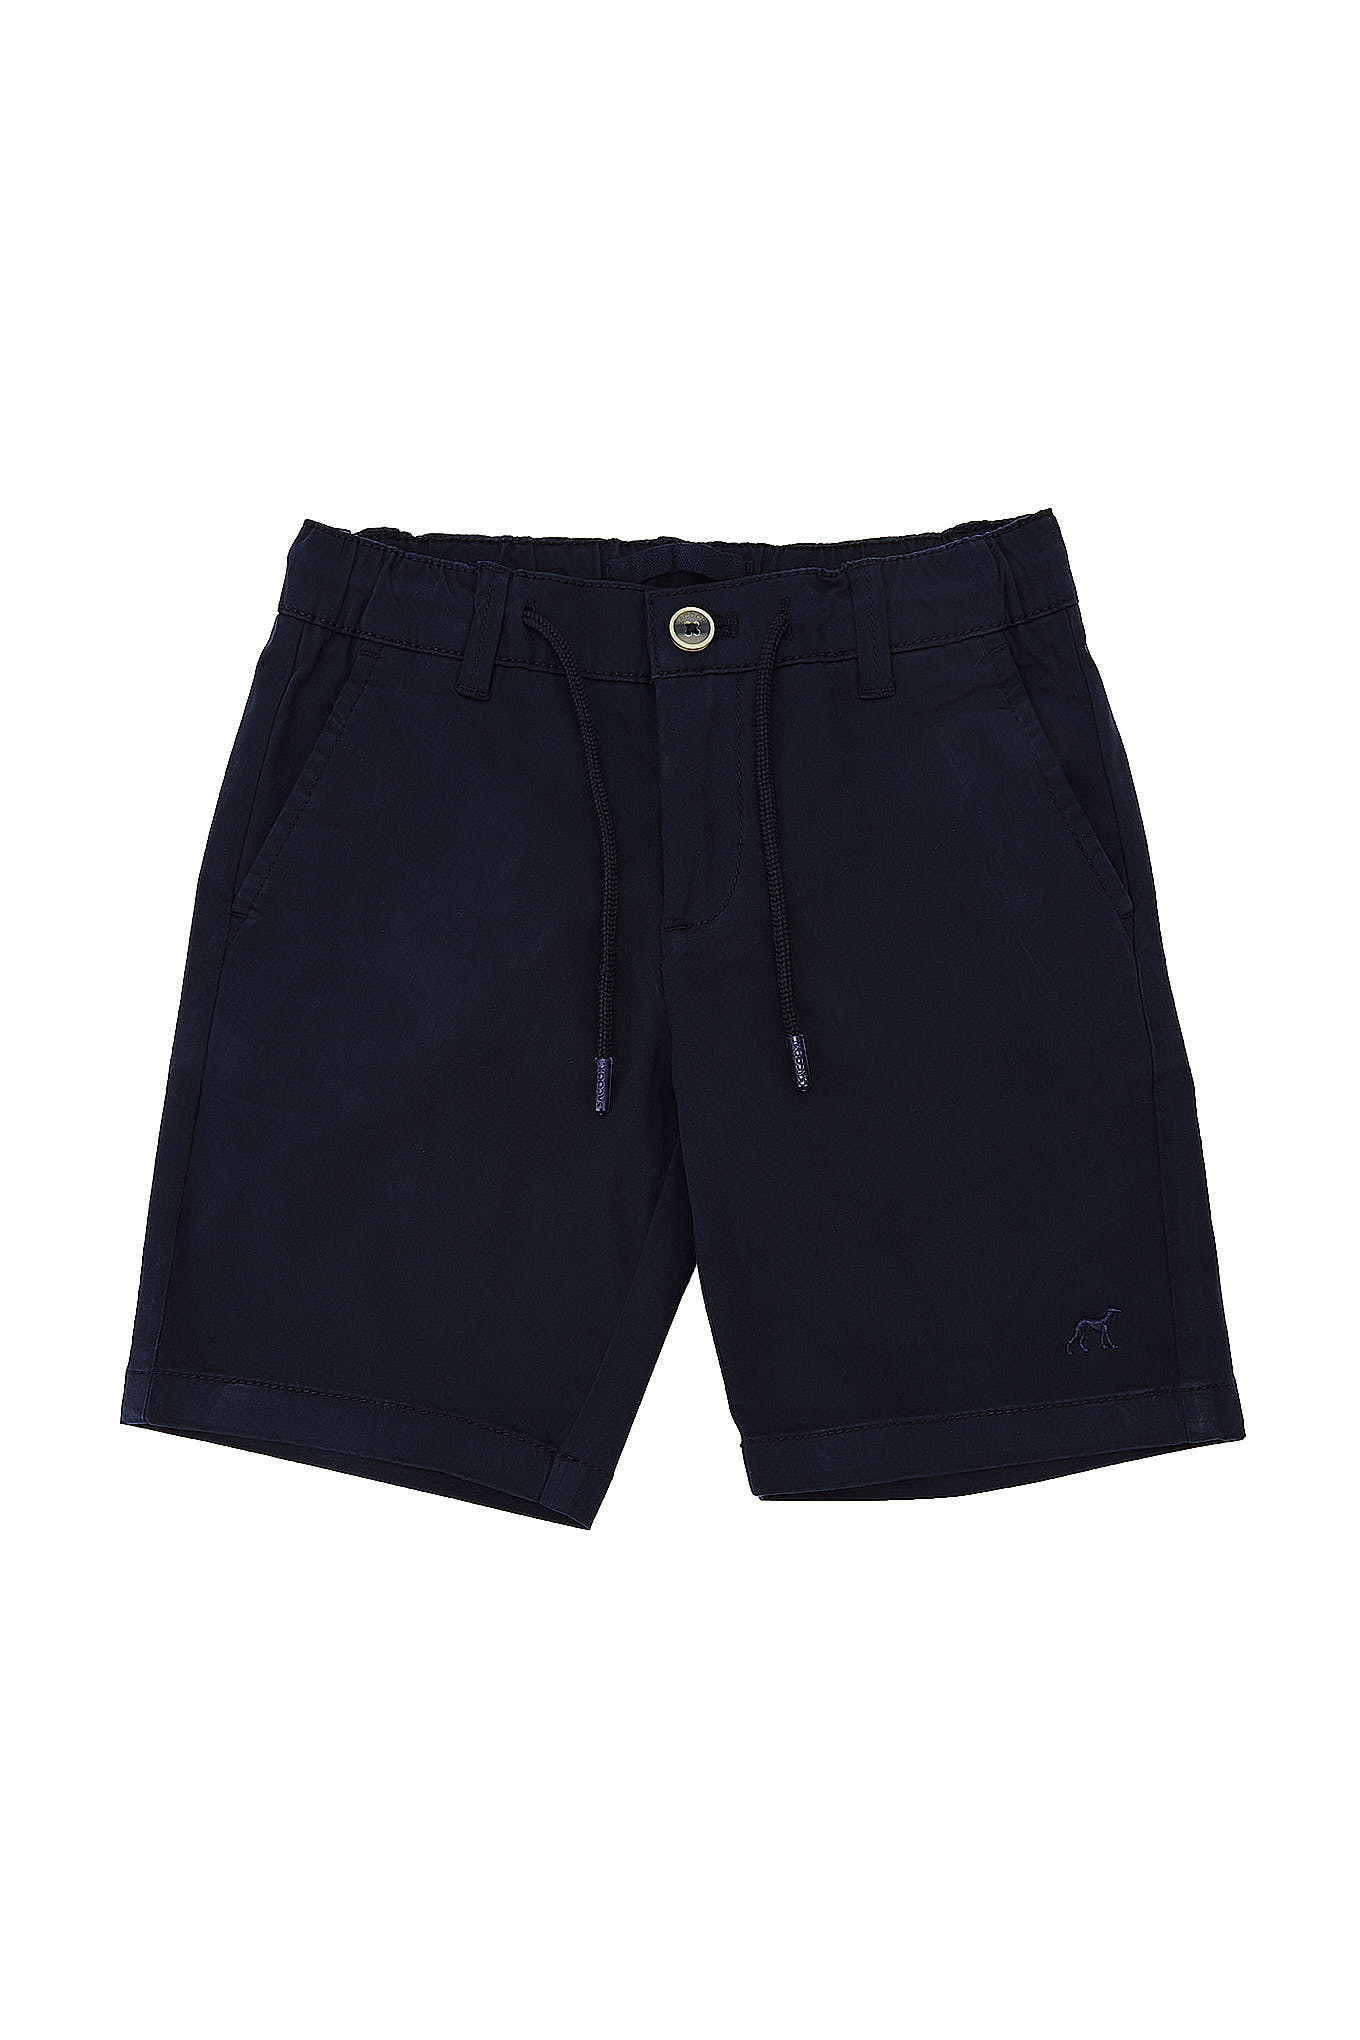 Bermuda Dark Blue Casual Boy